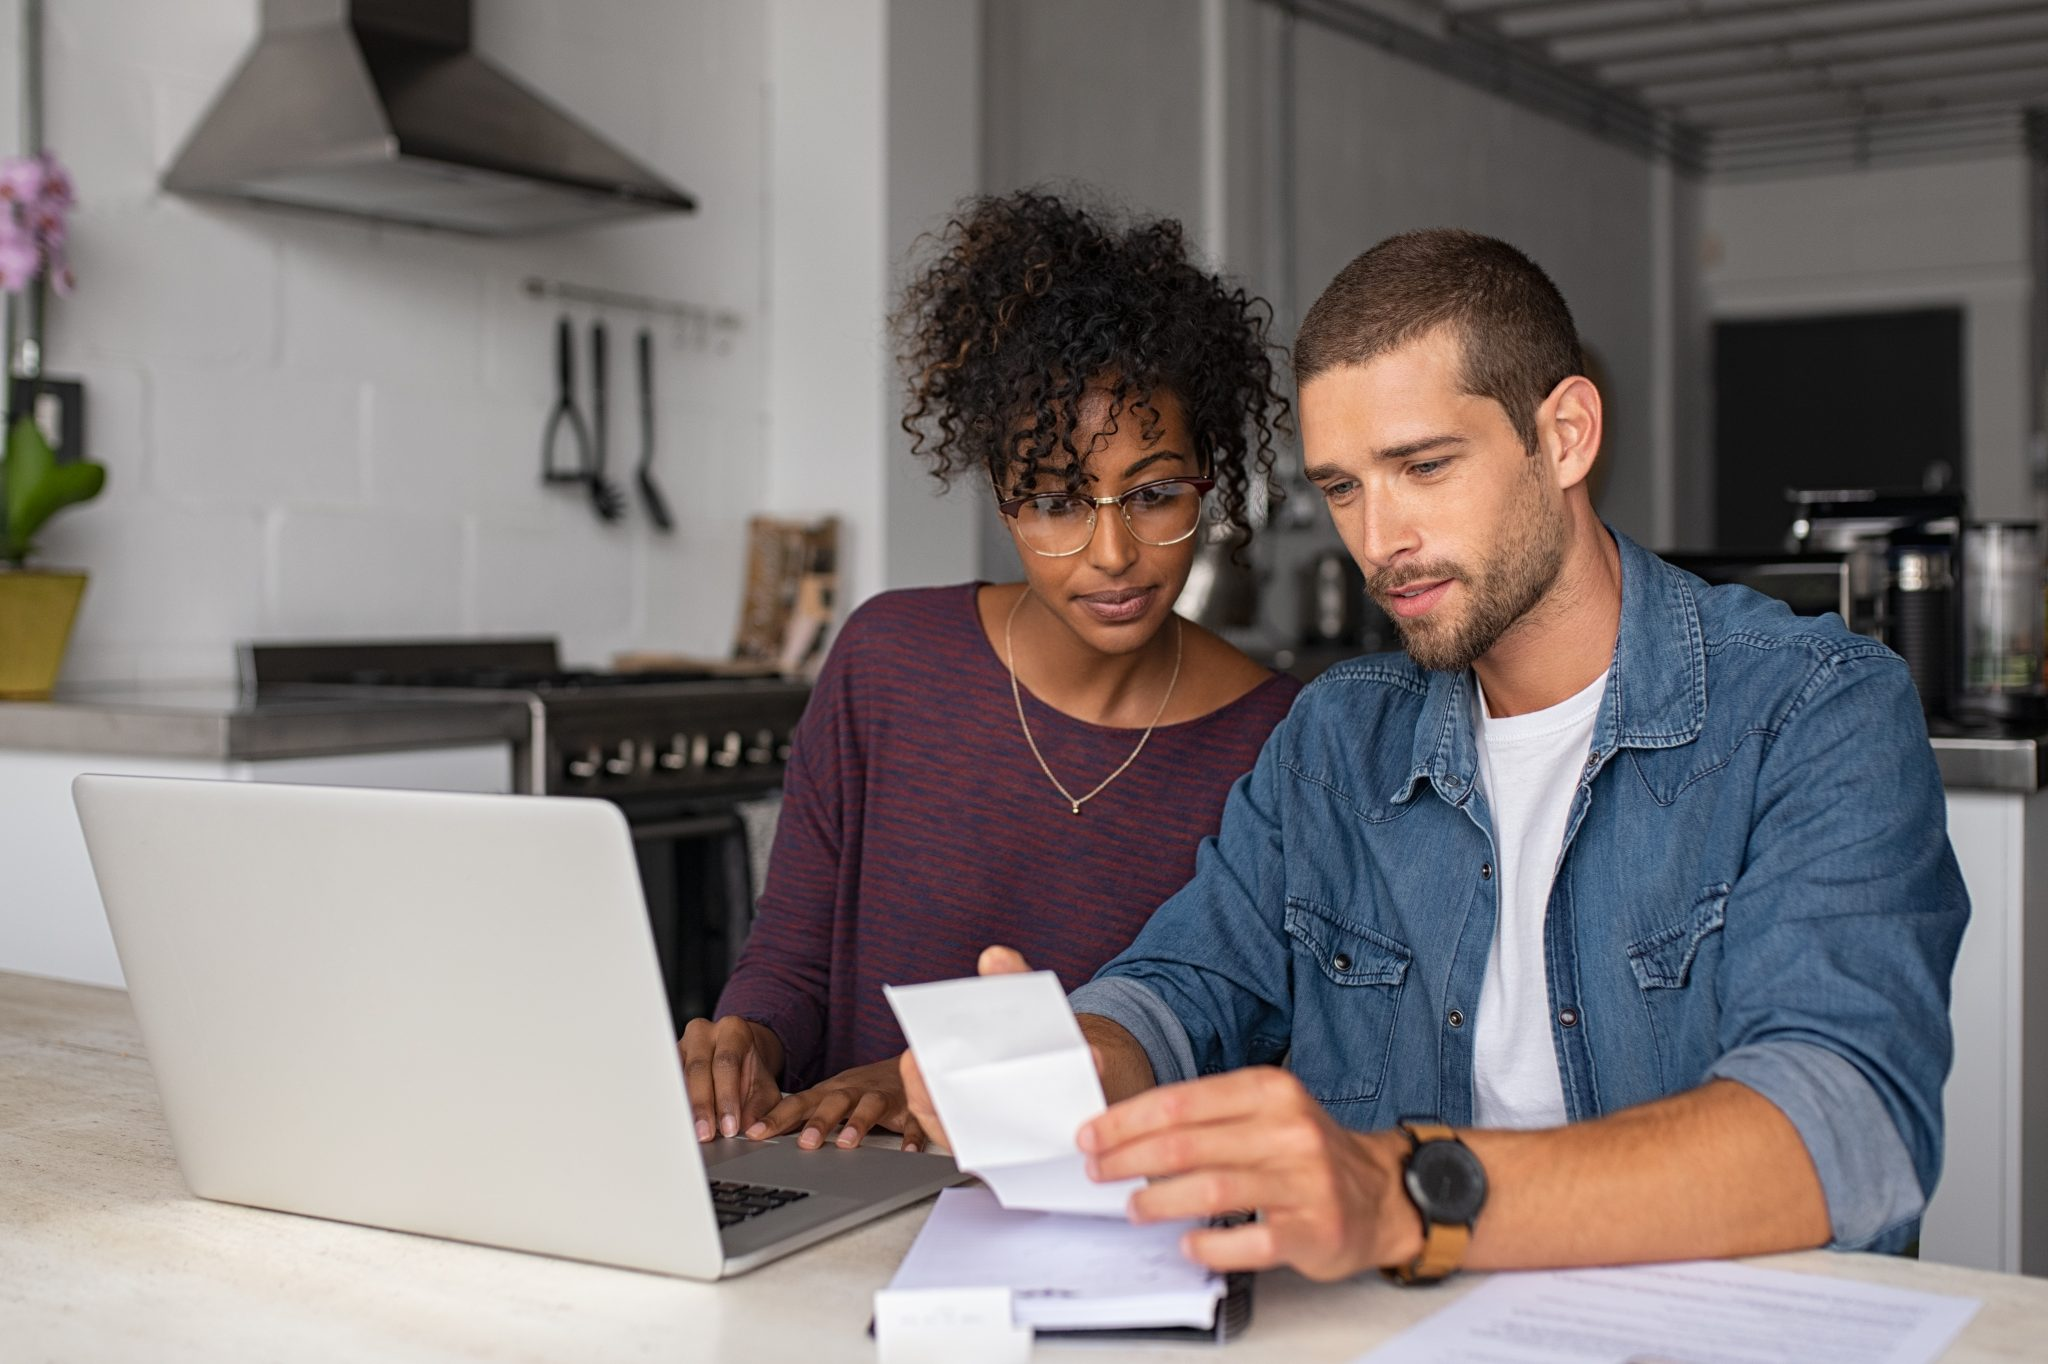 Young couple looking over bills and paperwork